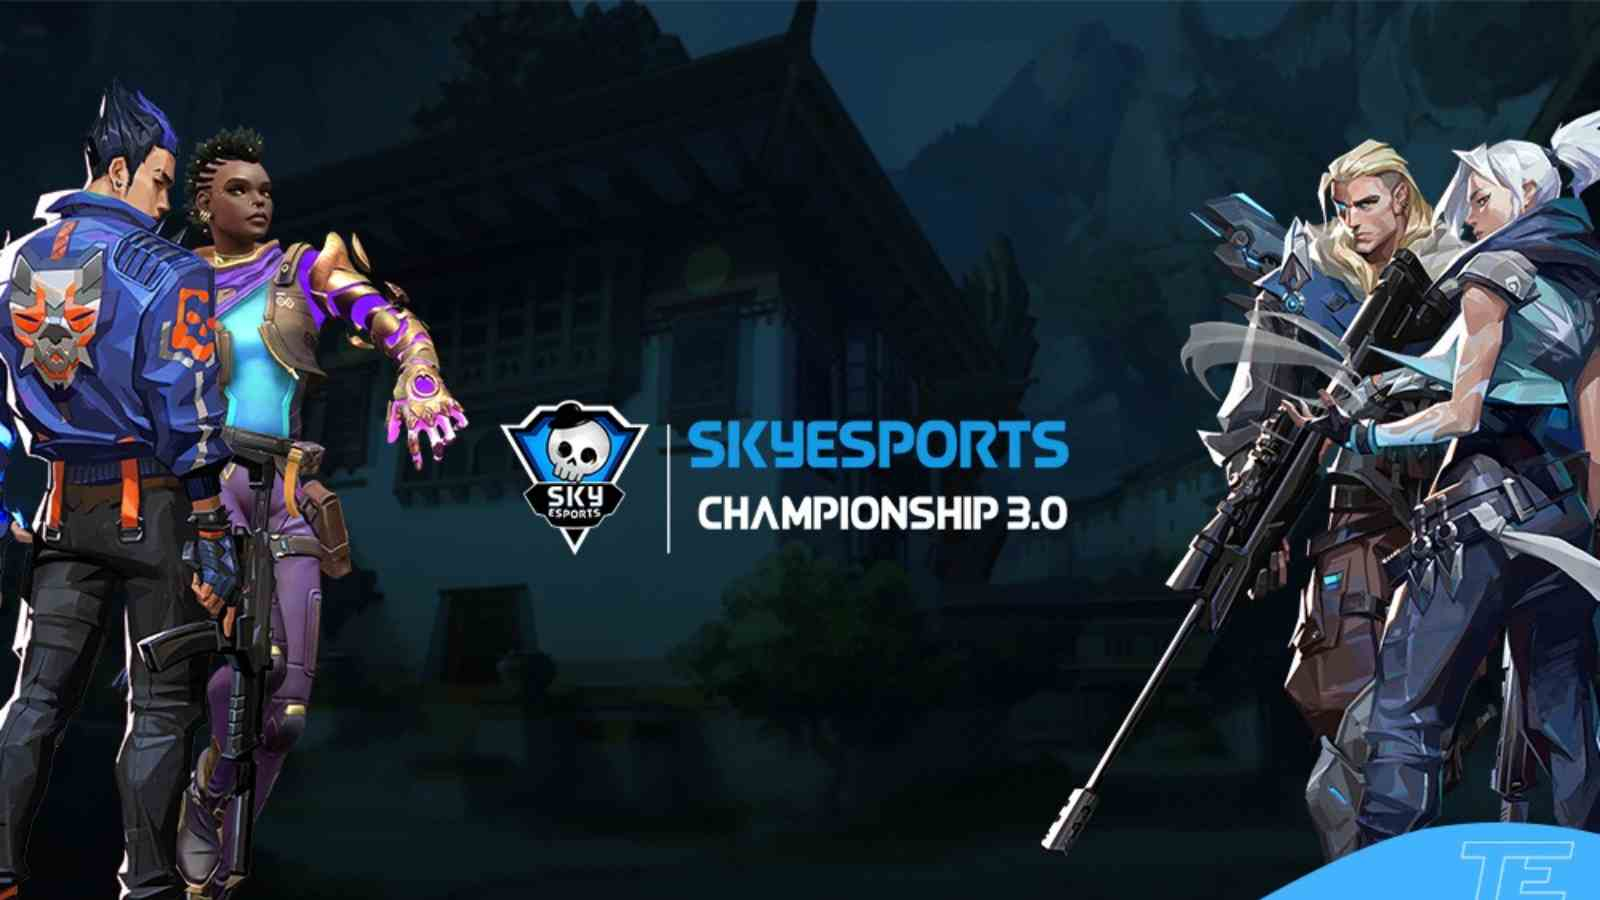 Valorant Skyesports Championship 3.0: Prize pool of INR 55 Lakh